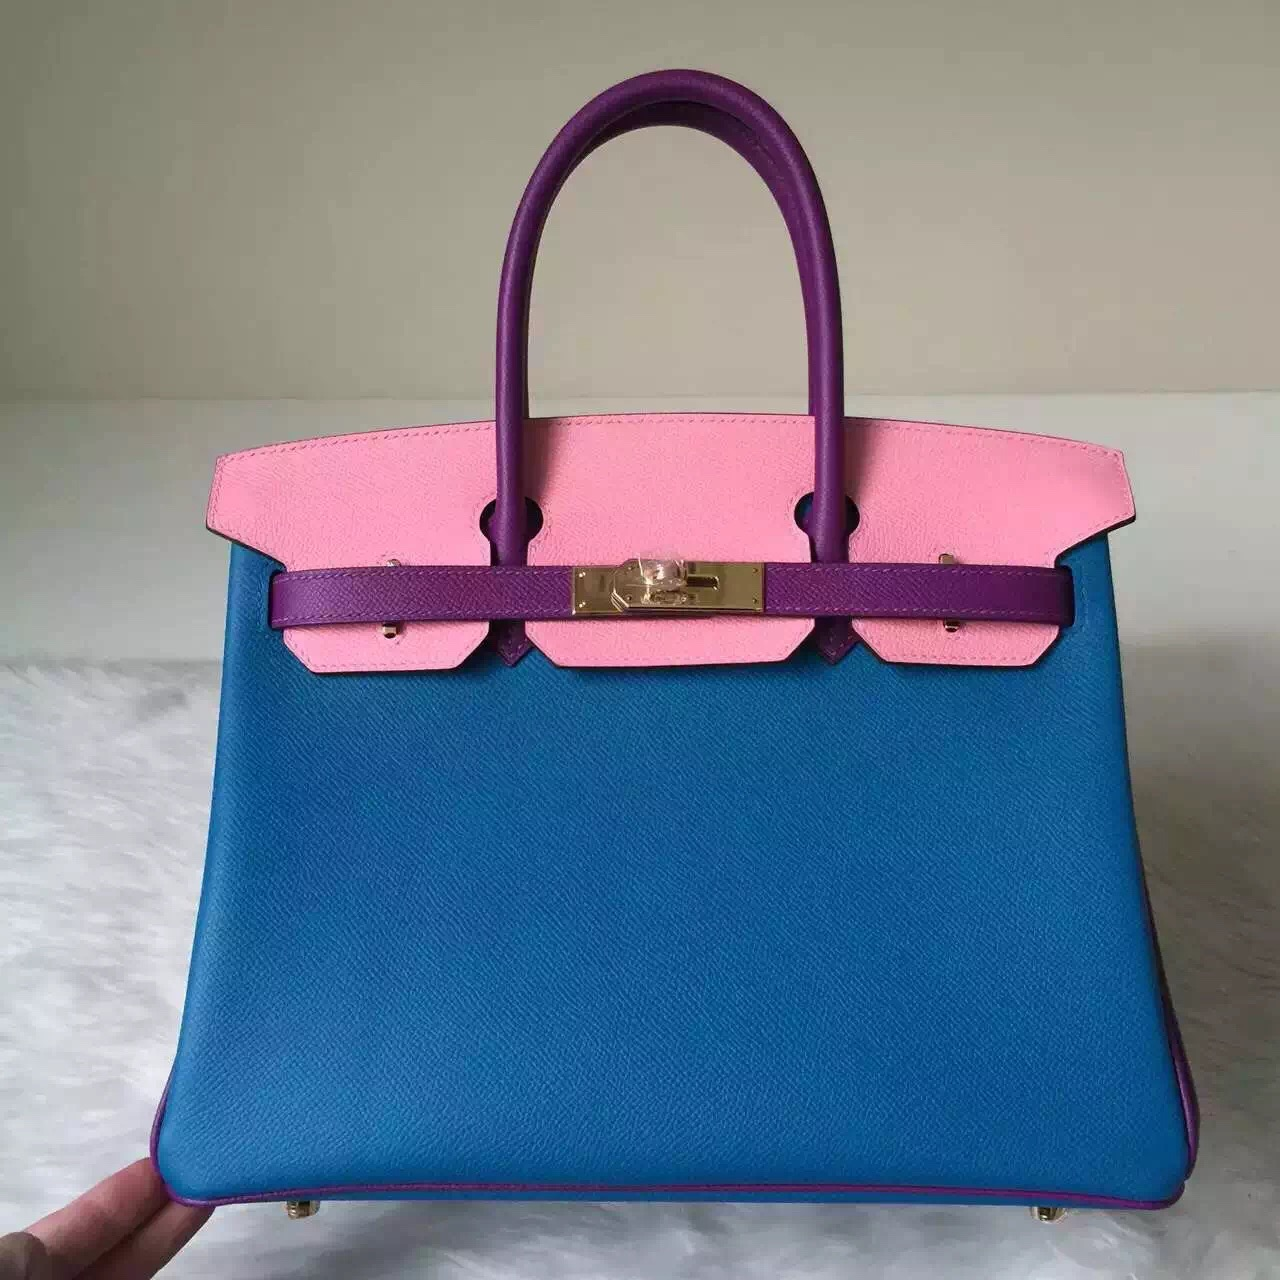 New Pretty Hermes Epsom Leather Color Blocking Birkin 30cm Women's Handbag